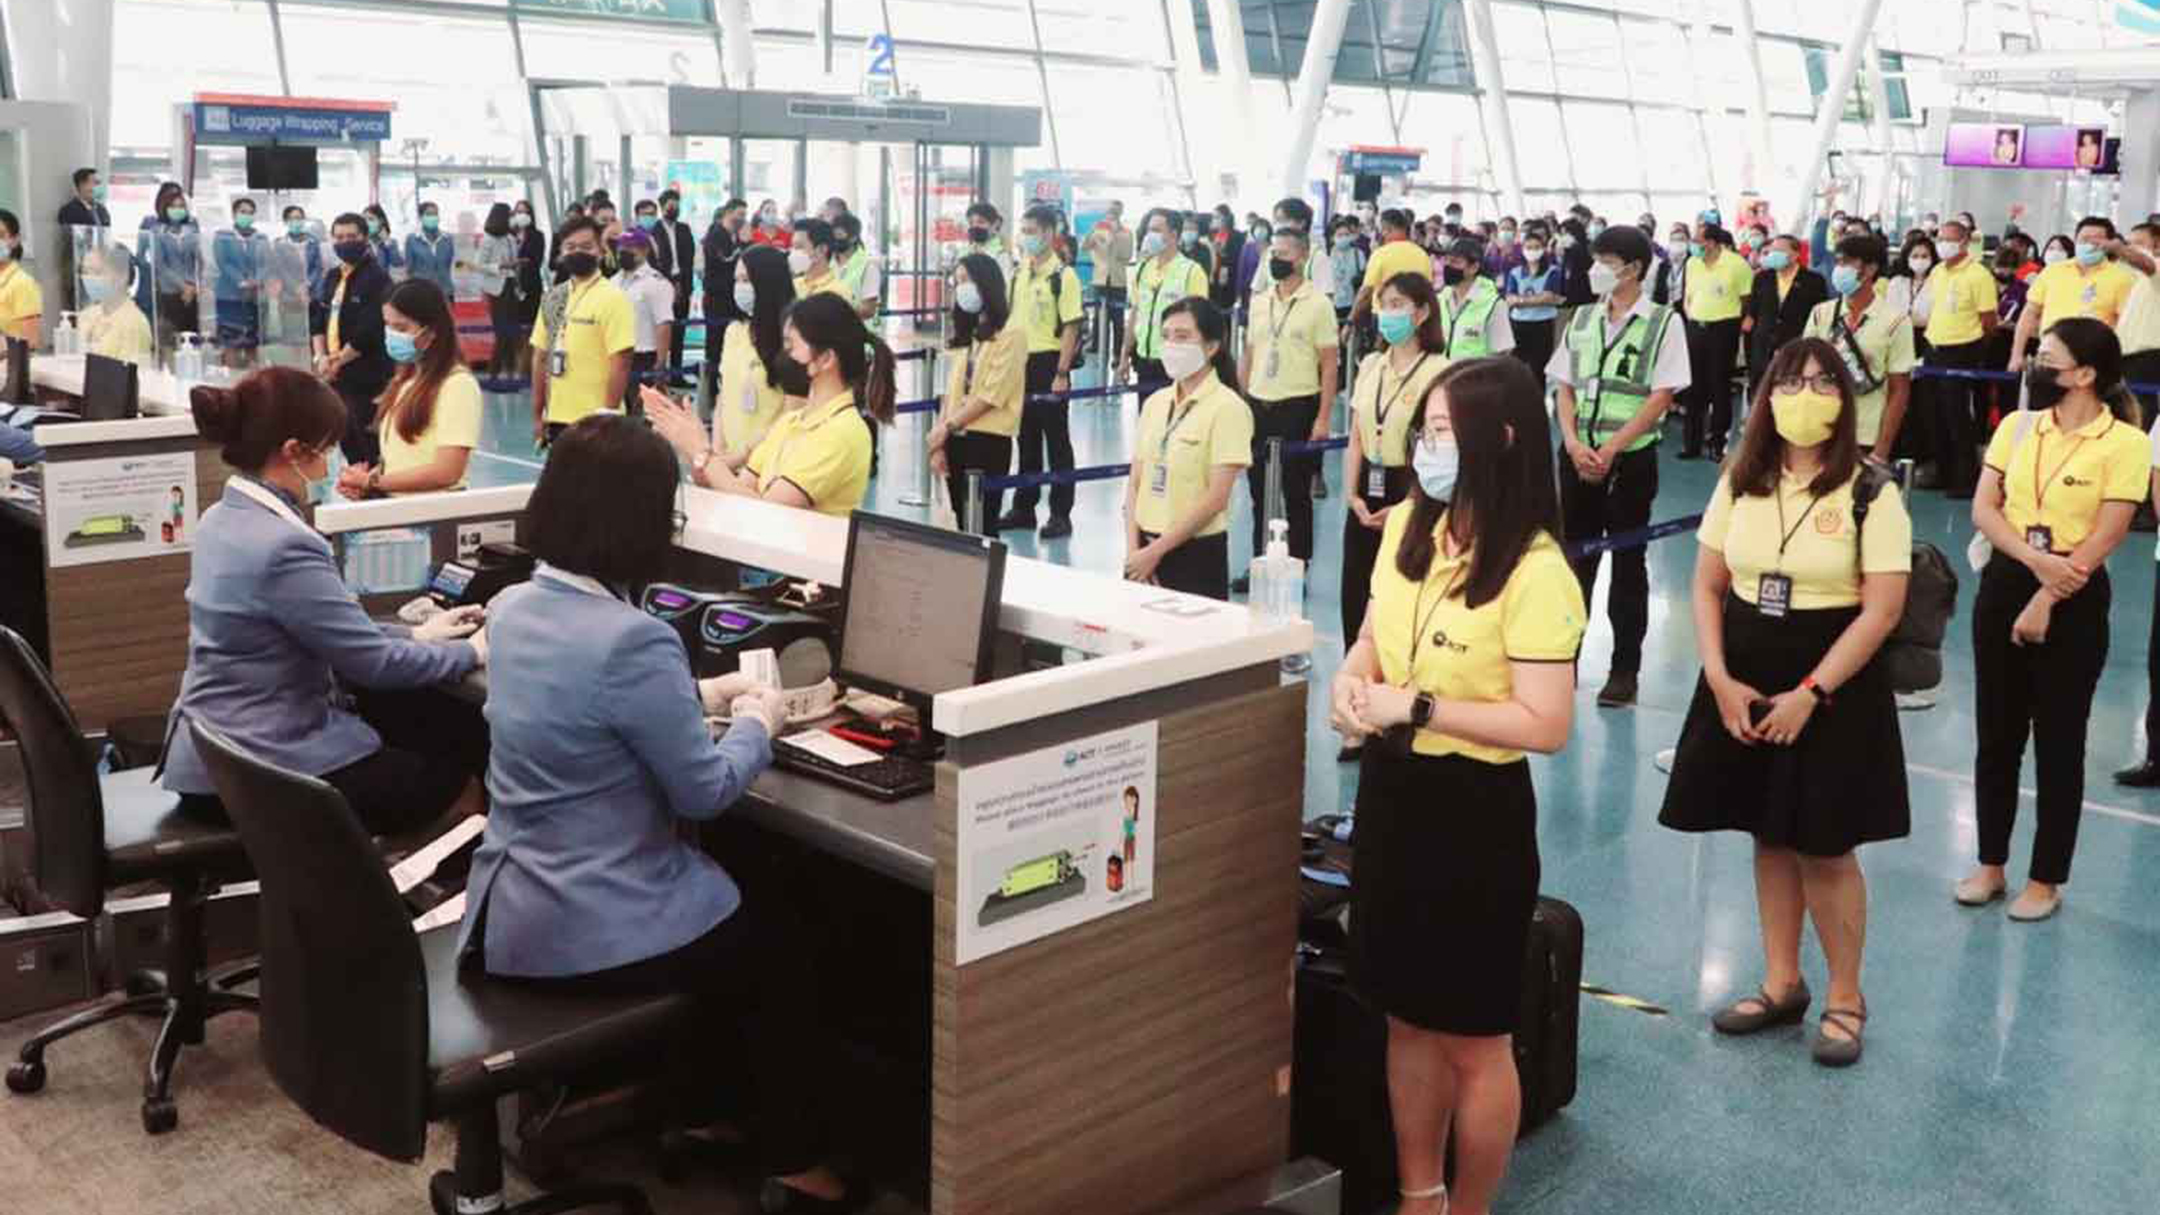 30% of arrivals denied entry to Phuket on Day 1 of new requirements